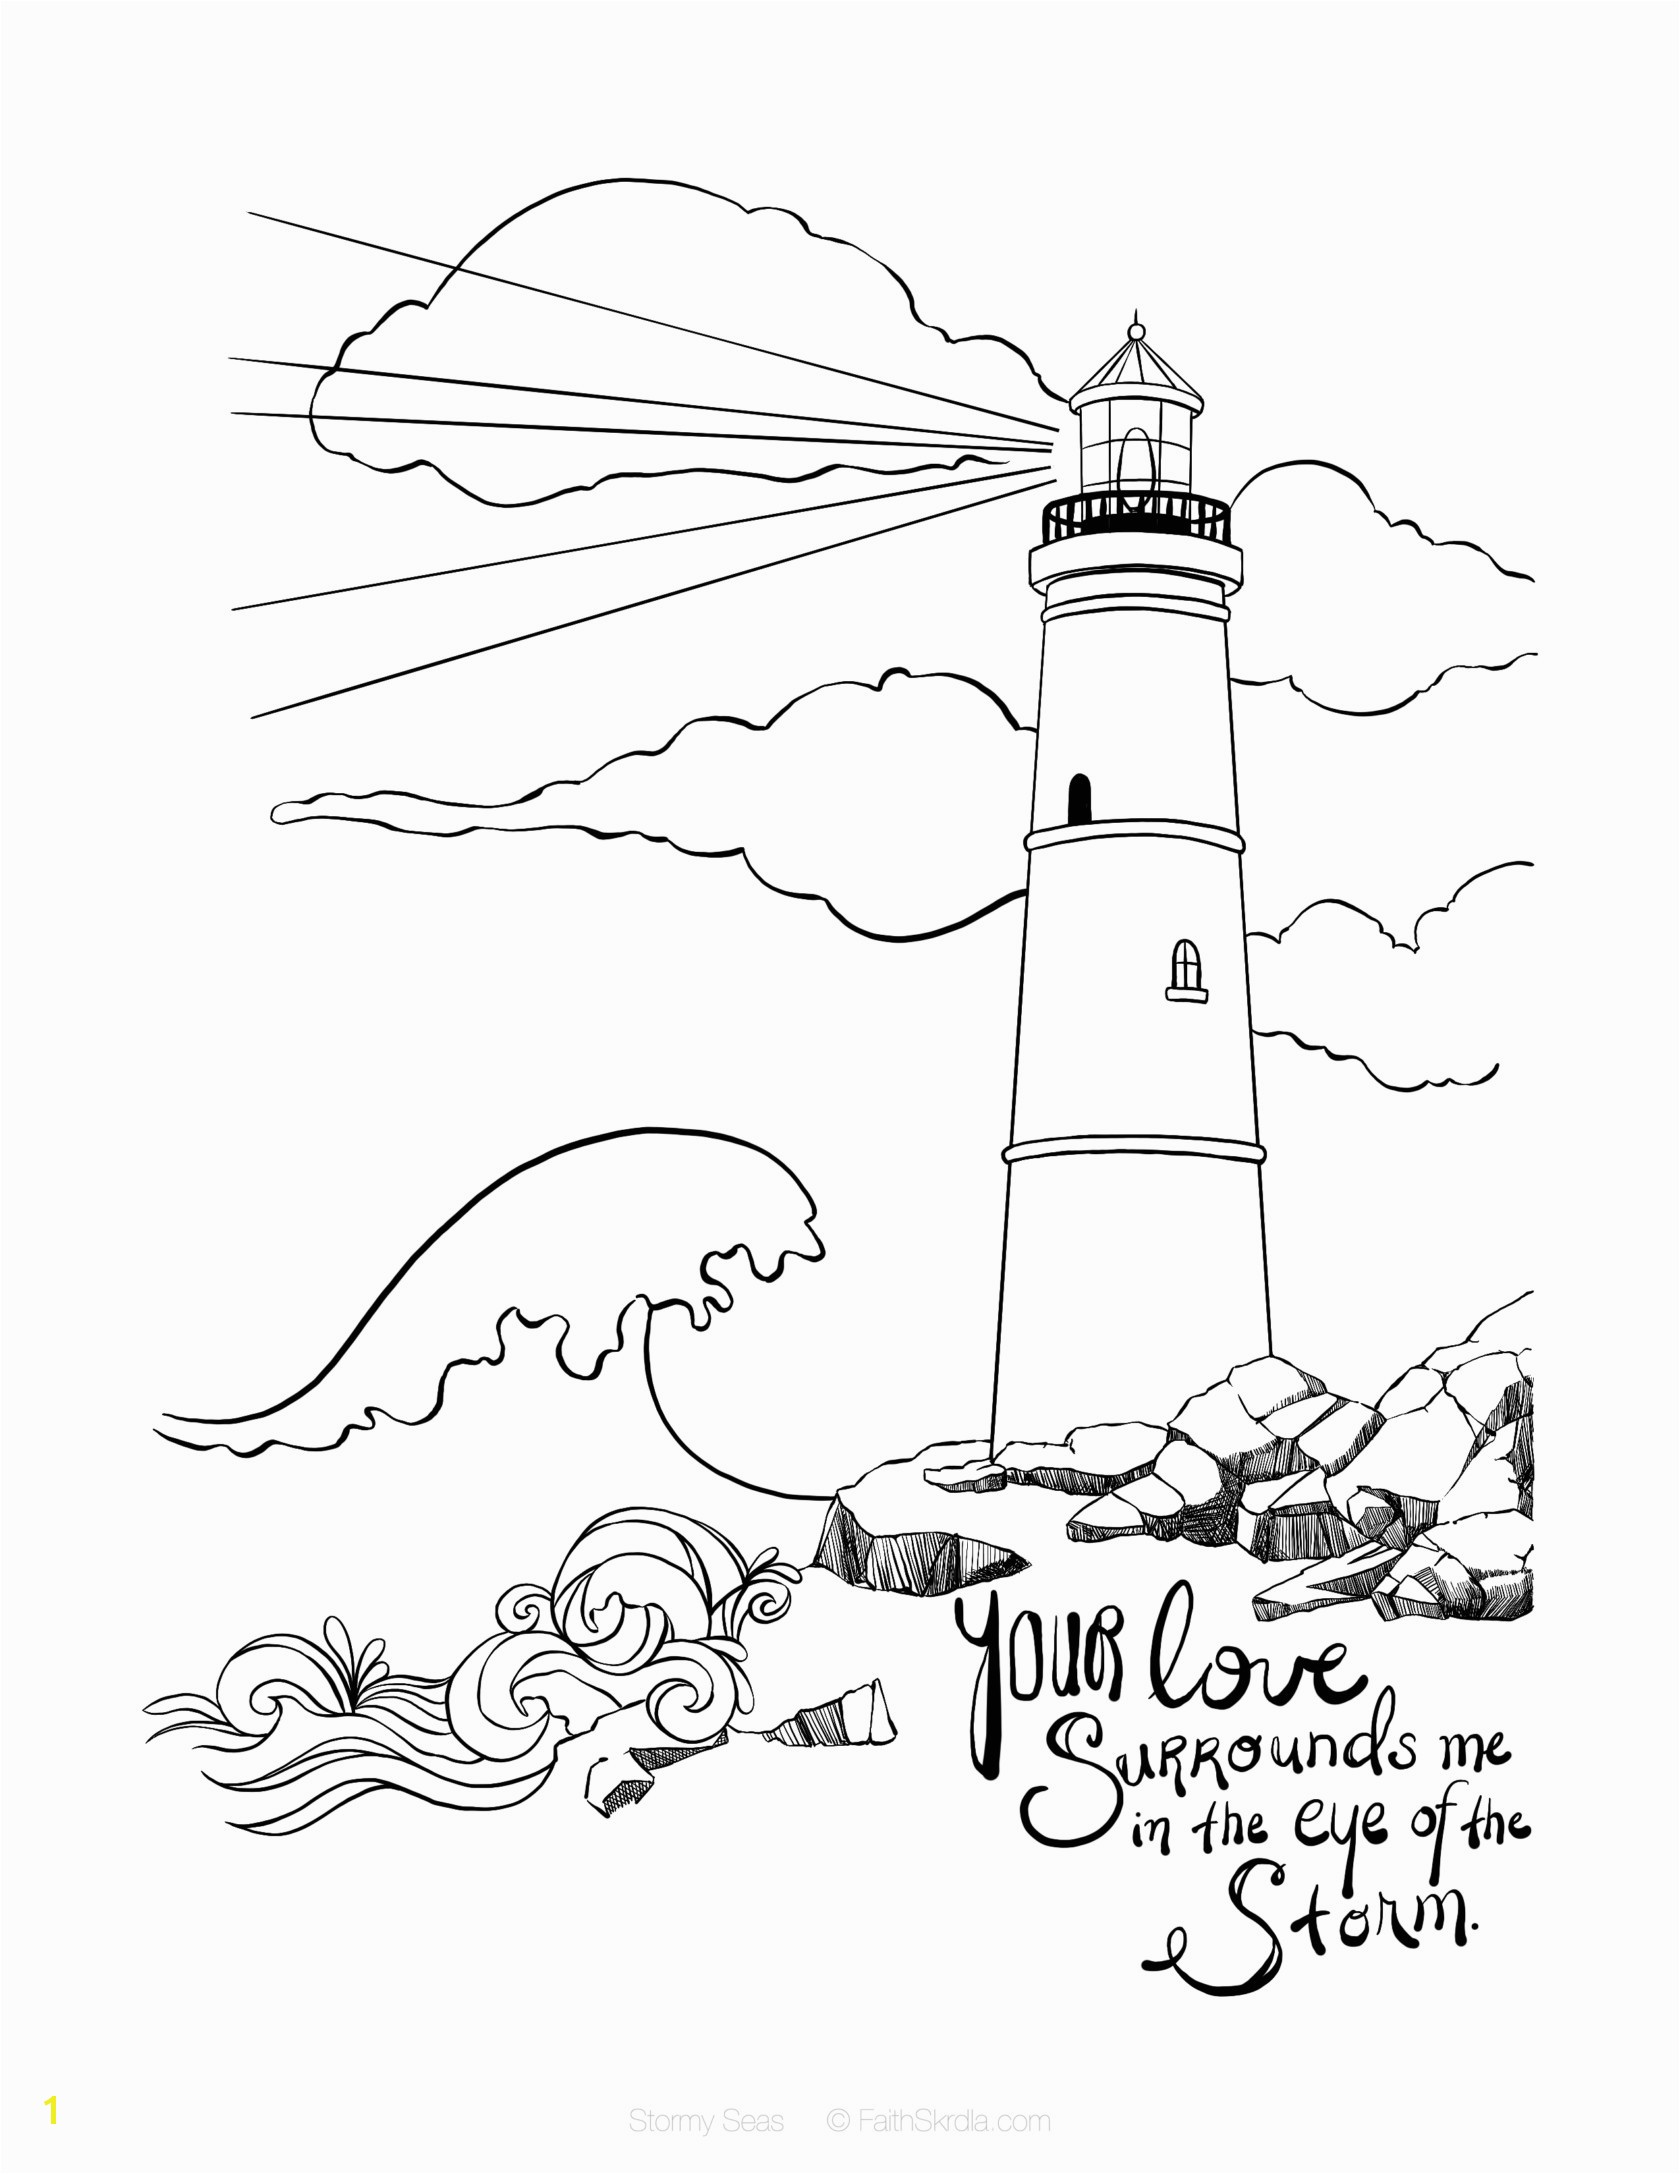 Lighthouse Coloring Pages Even In Stormy Seas Your Love Surrounds Me Romans 8 28 Bible